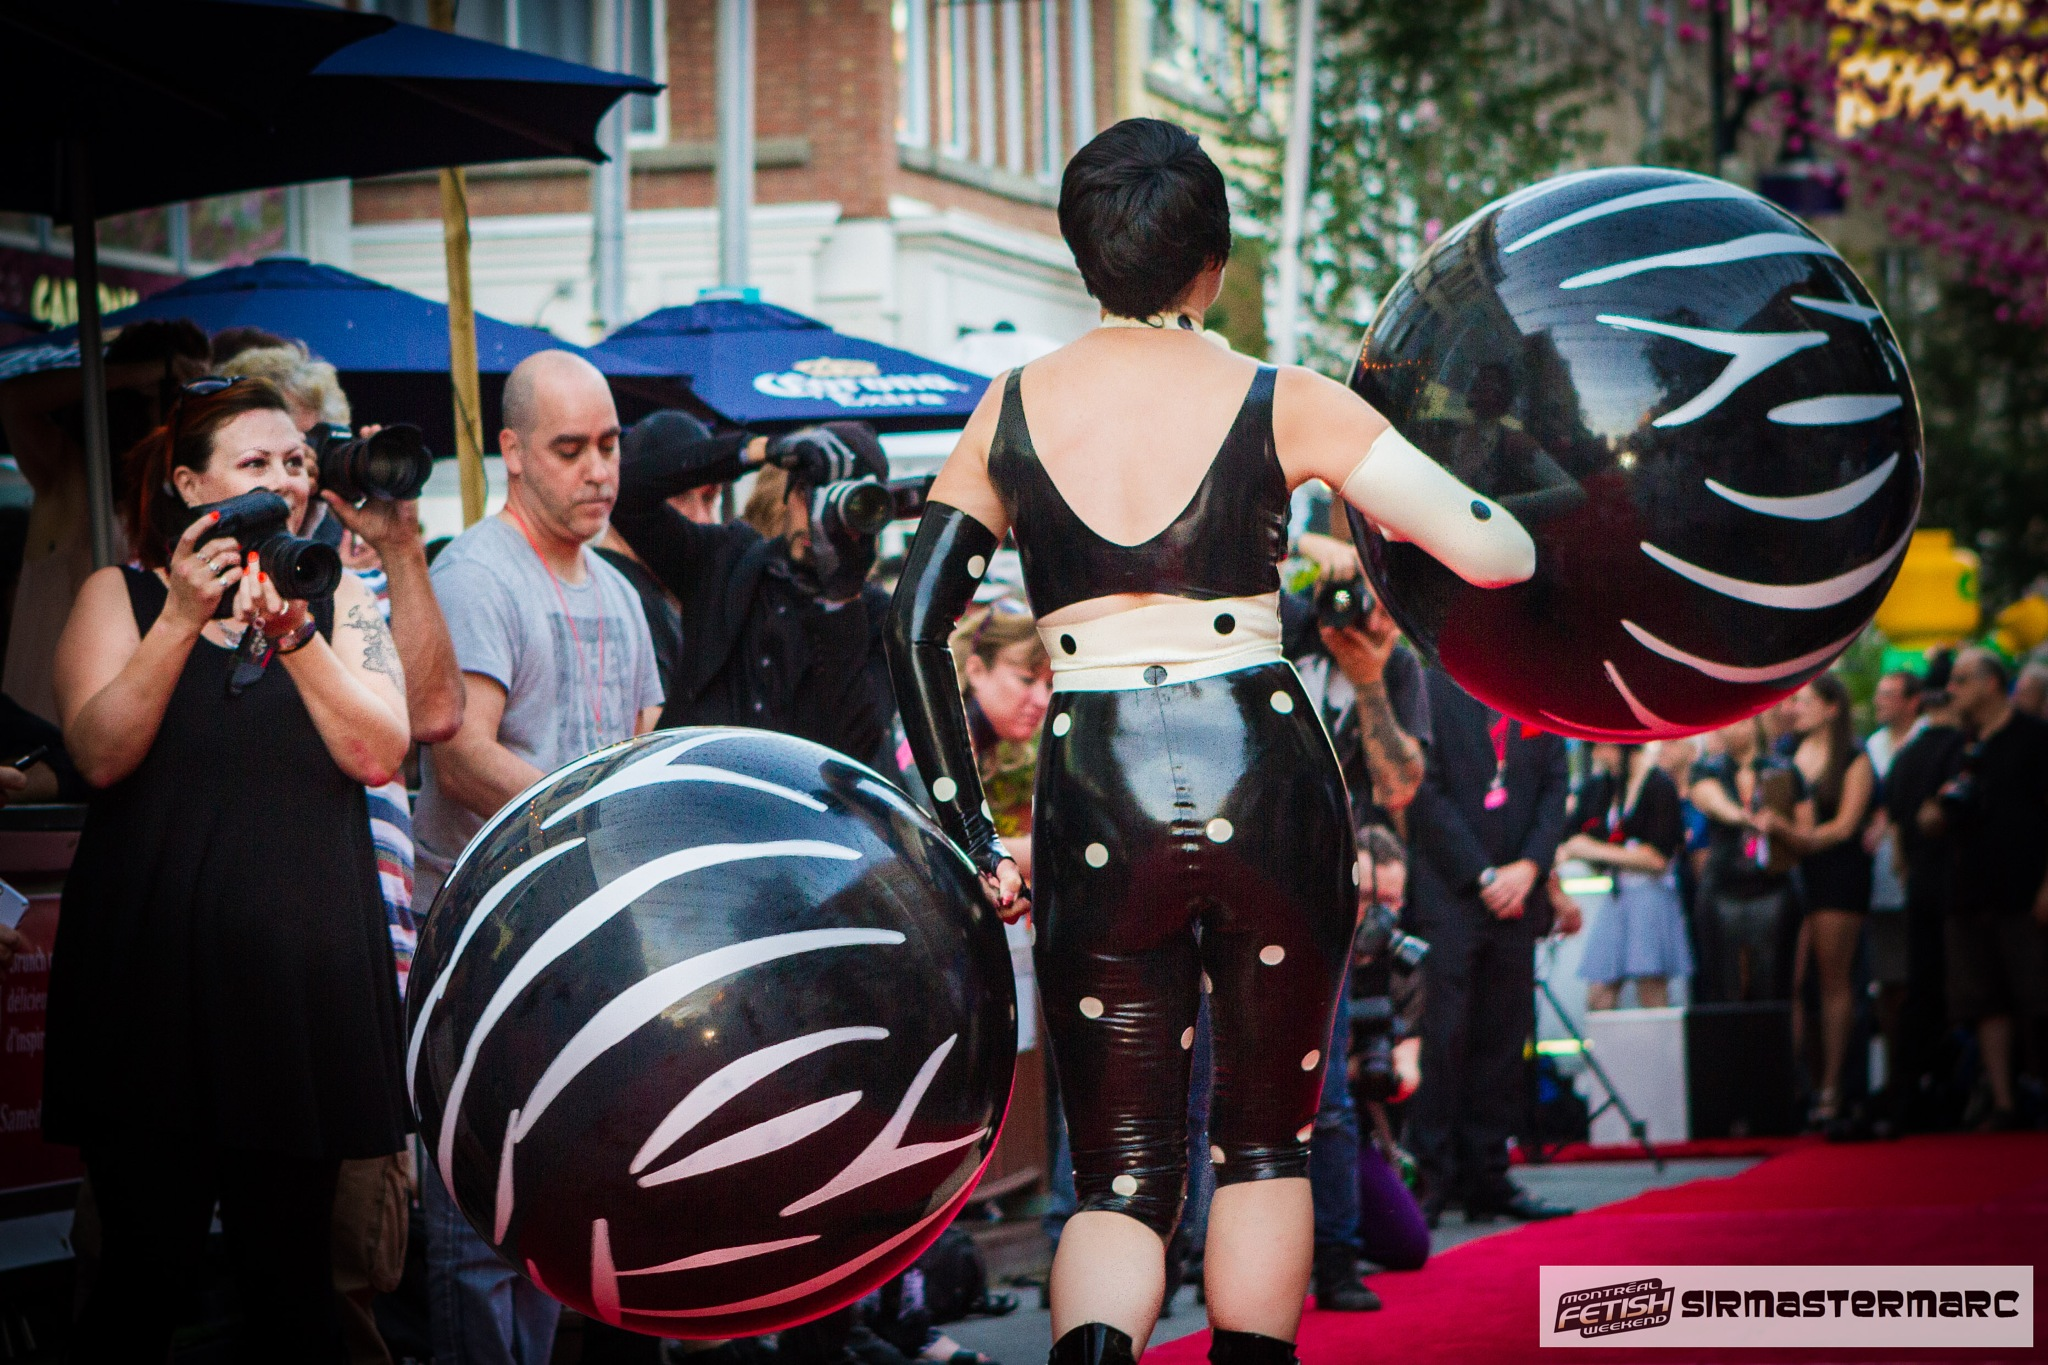 Domina Elle having fun with the crowd by SirMasterMarc